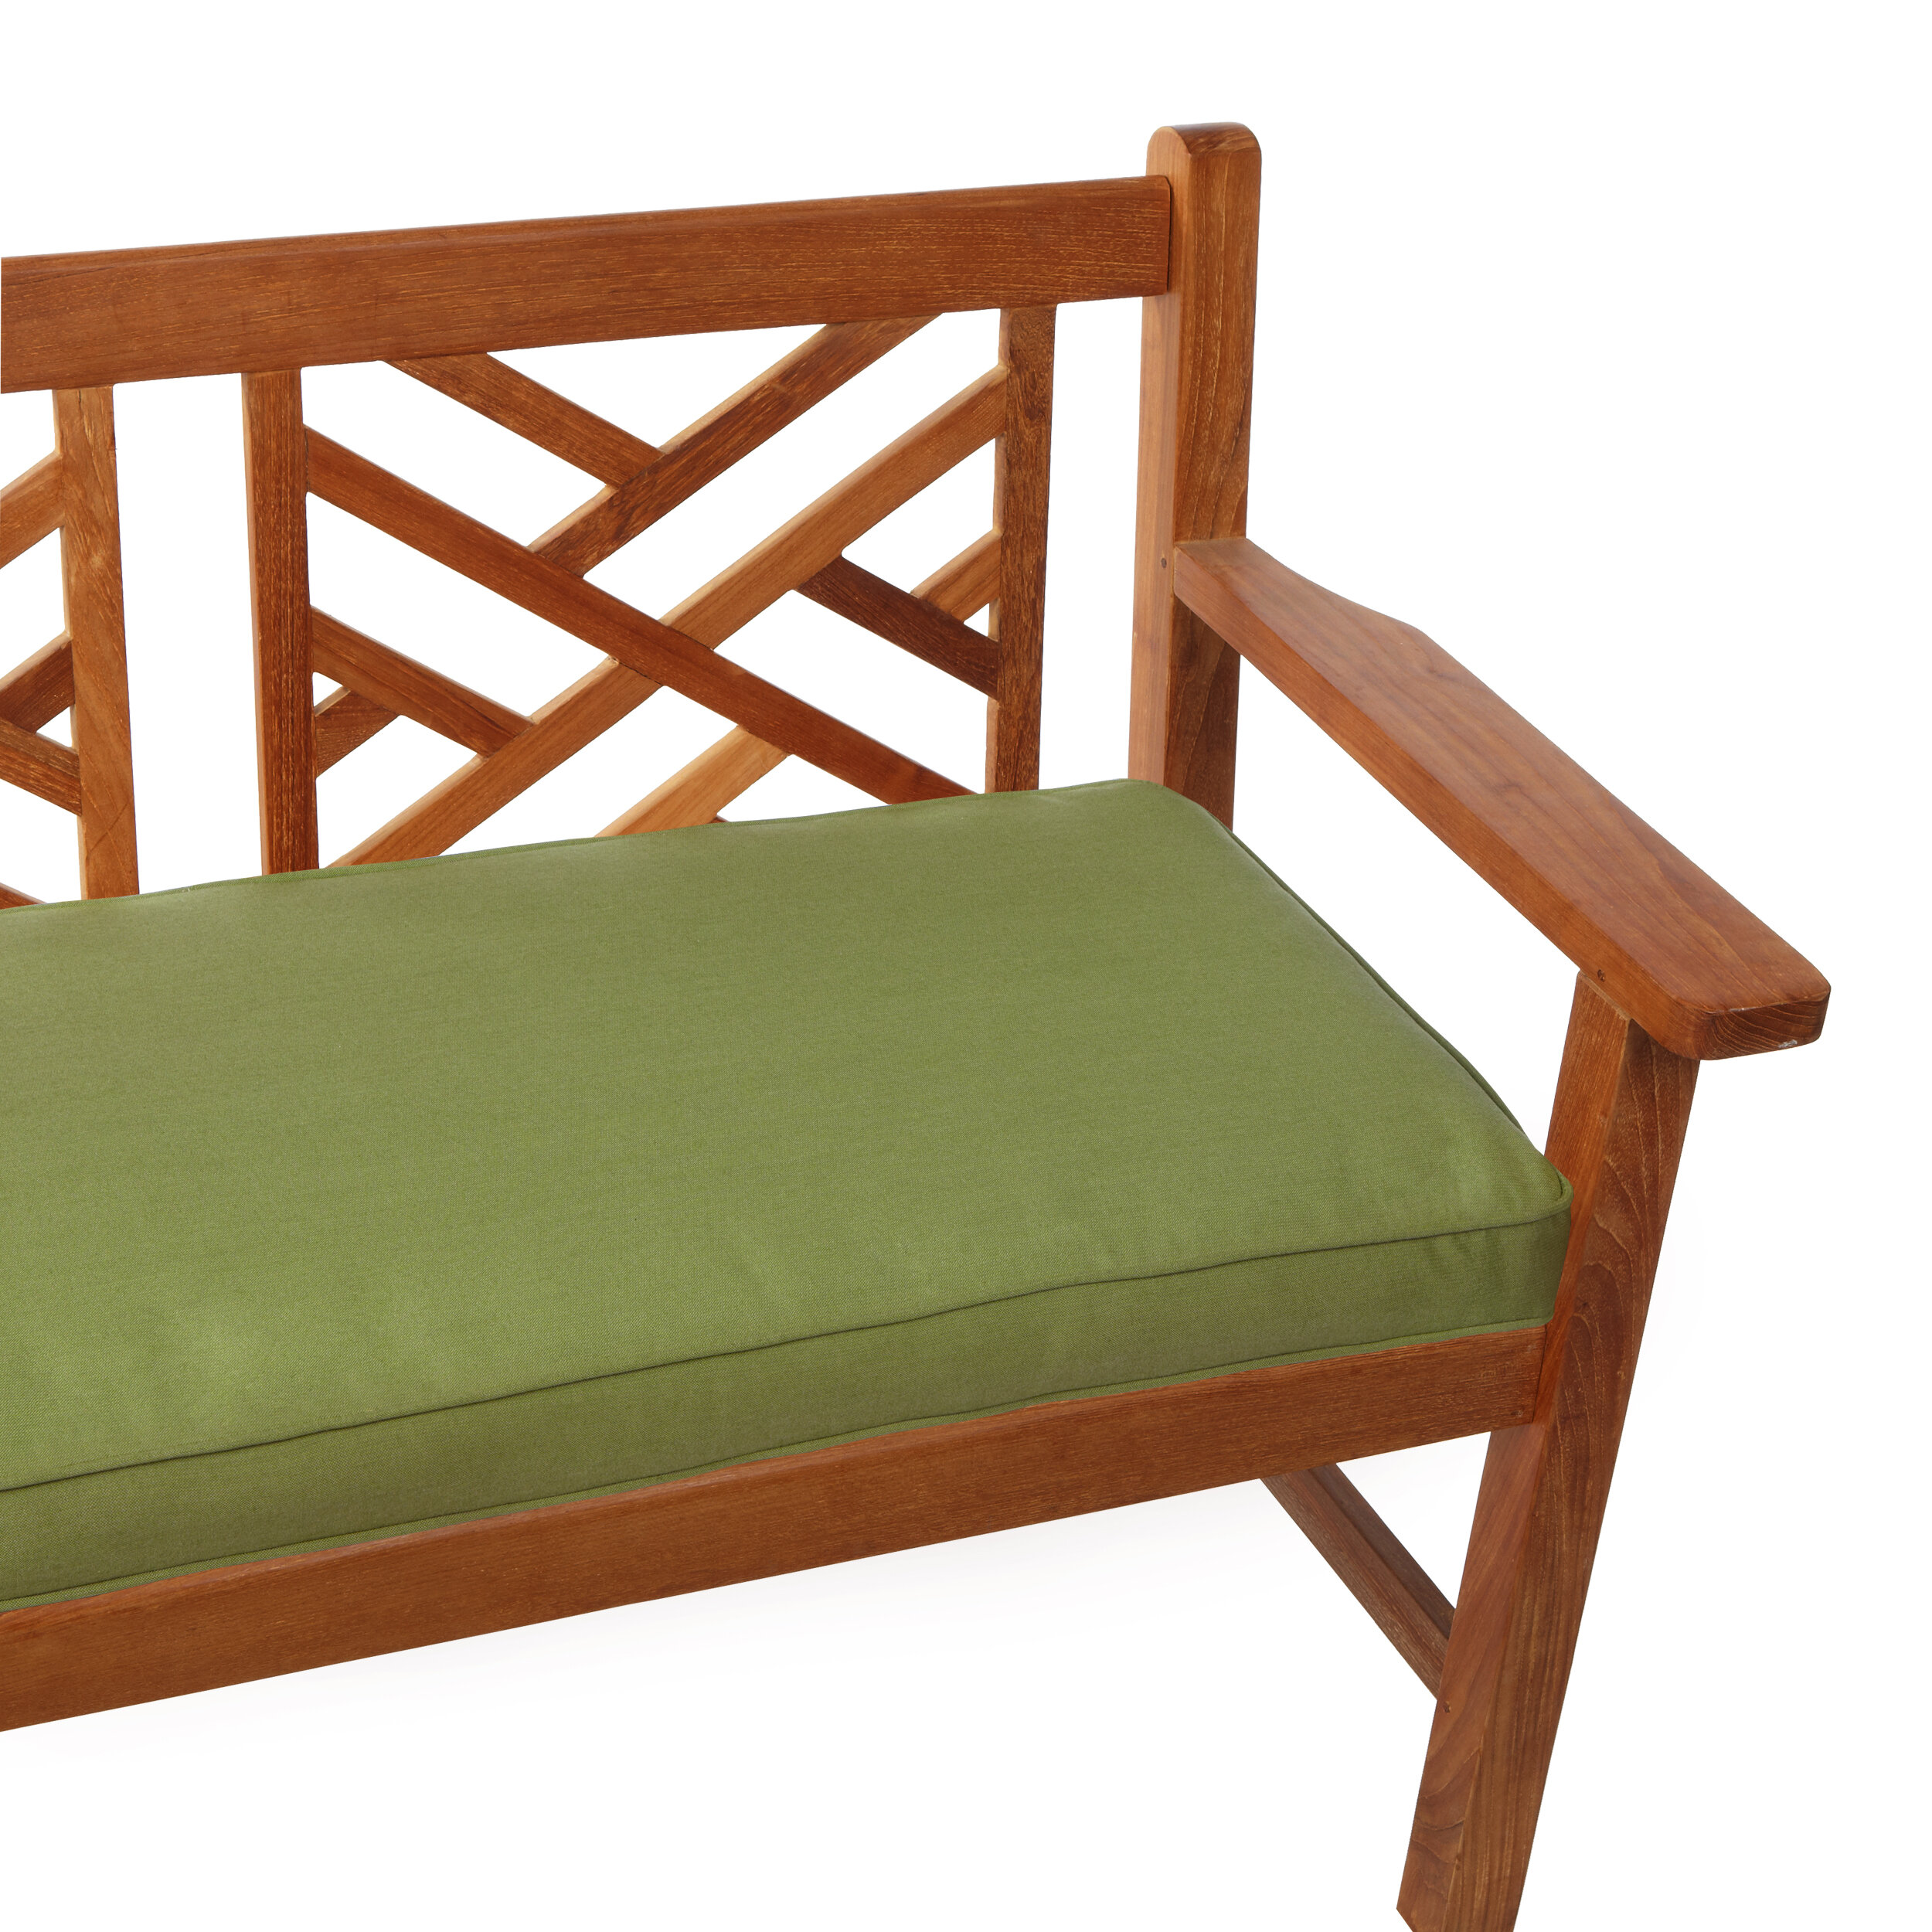 cushion world bench cushions wonderful outdoor ideas natural brilliant wood new dining inch market furniture san of collection